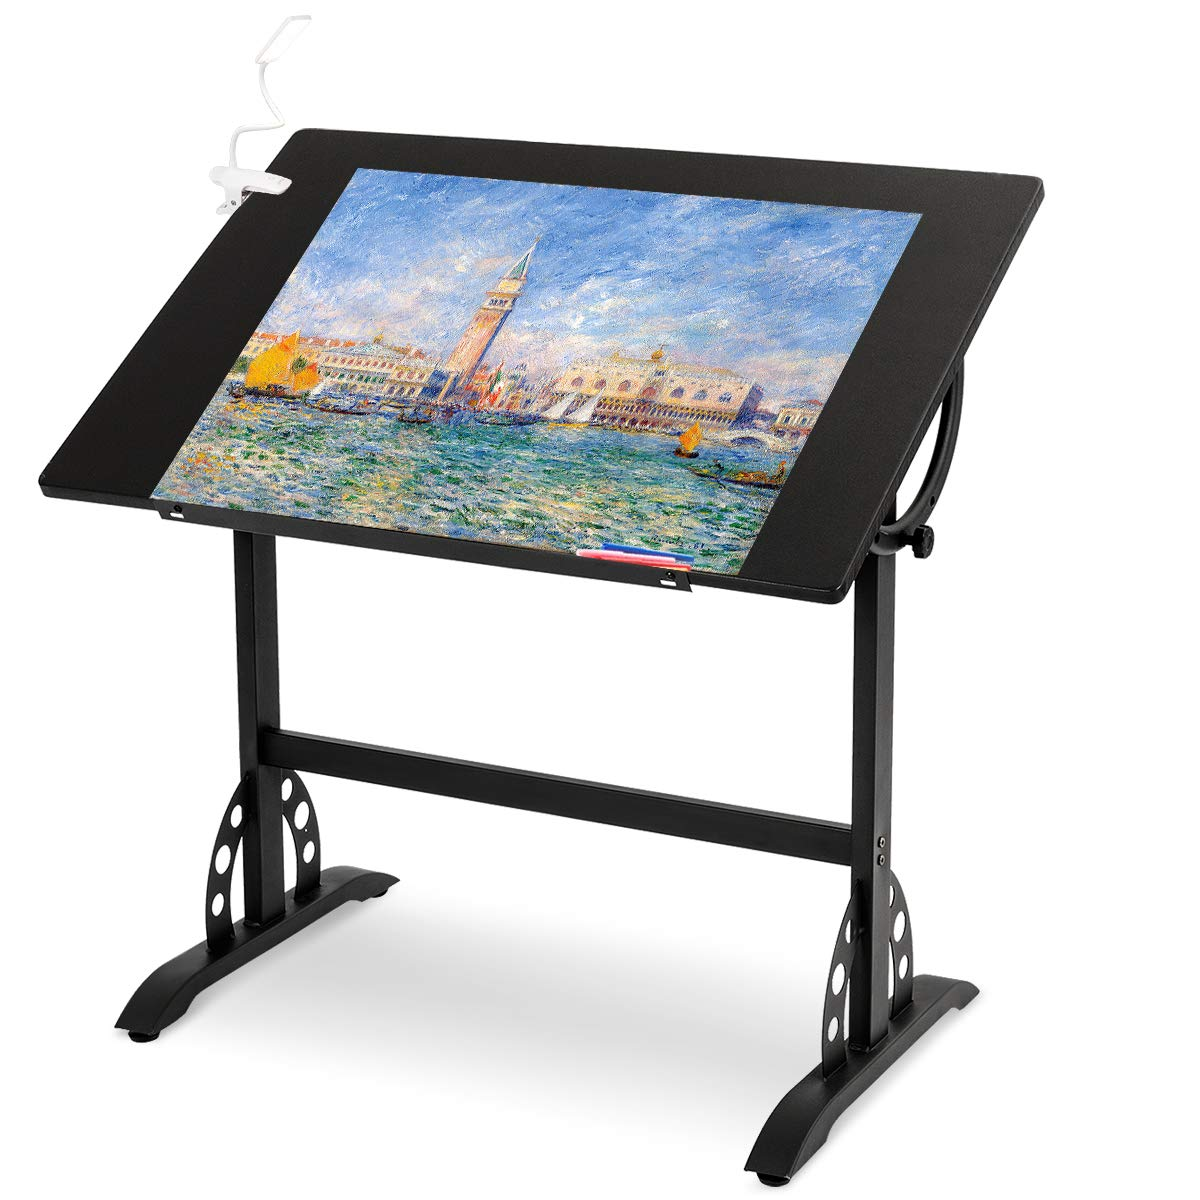 Tangkula Adjustable Drawing Desk Art & Craft Drafting Table Craft Station Chic Multi-Functional Paint, Study, Write Table, Black by Tangkula